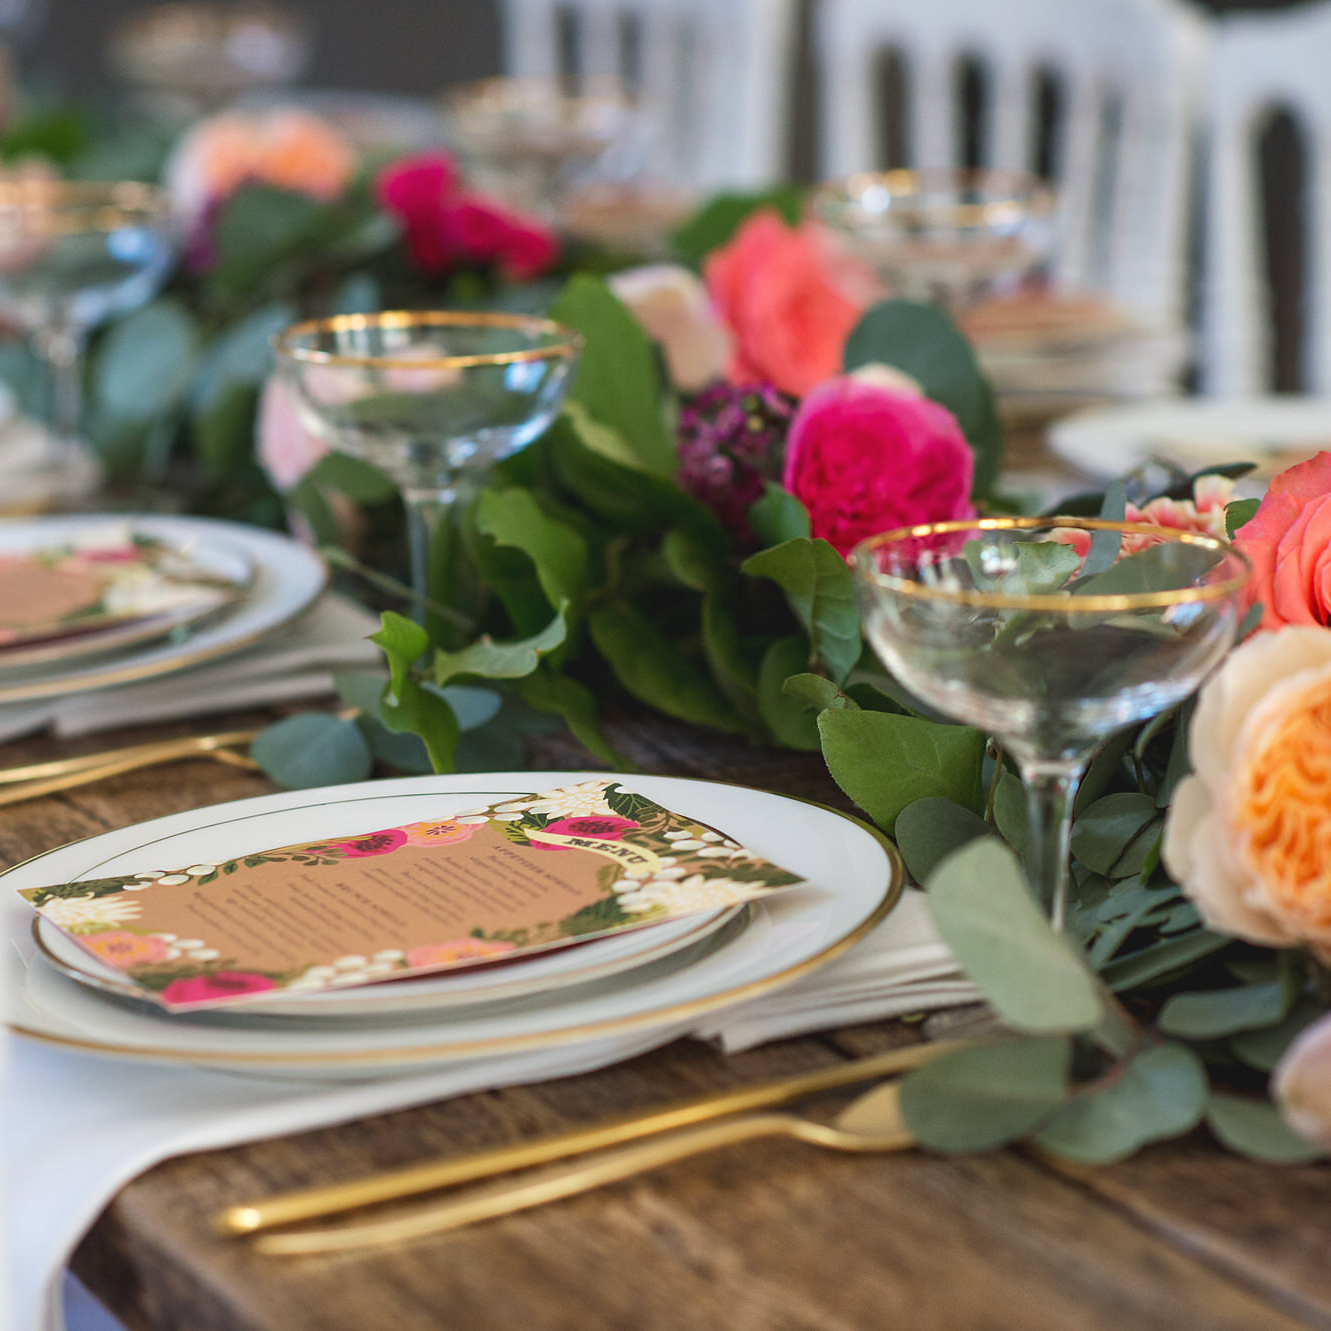 Whimsical & intimate garden brunch - May 2015